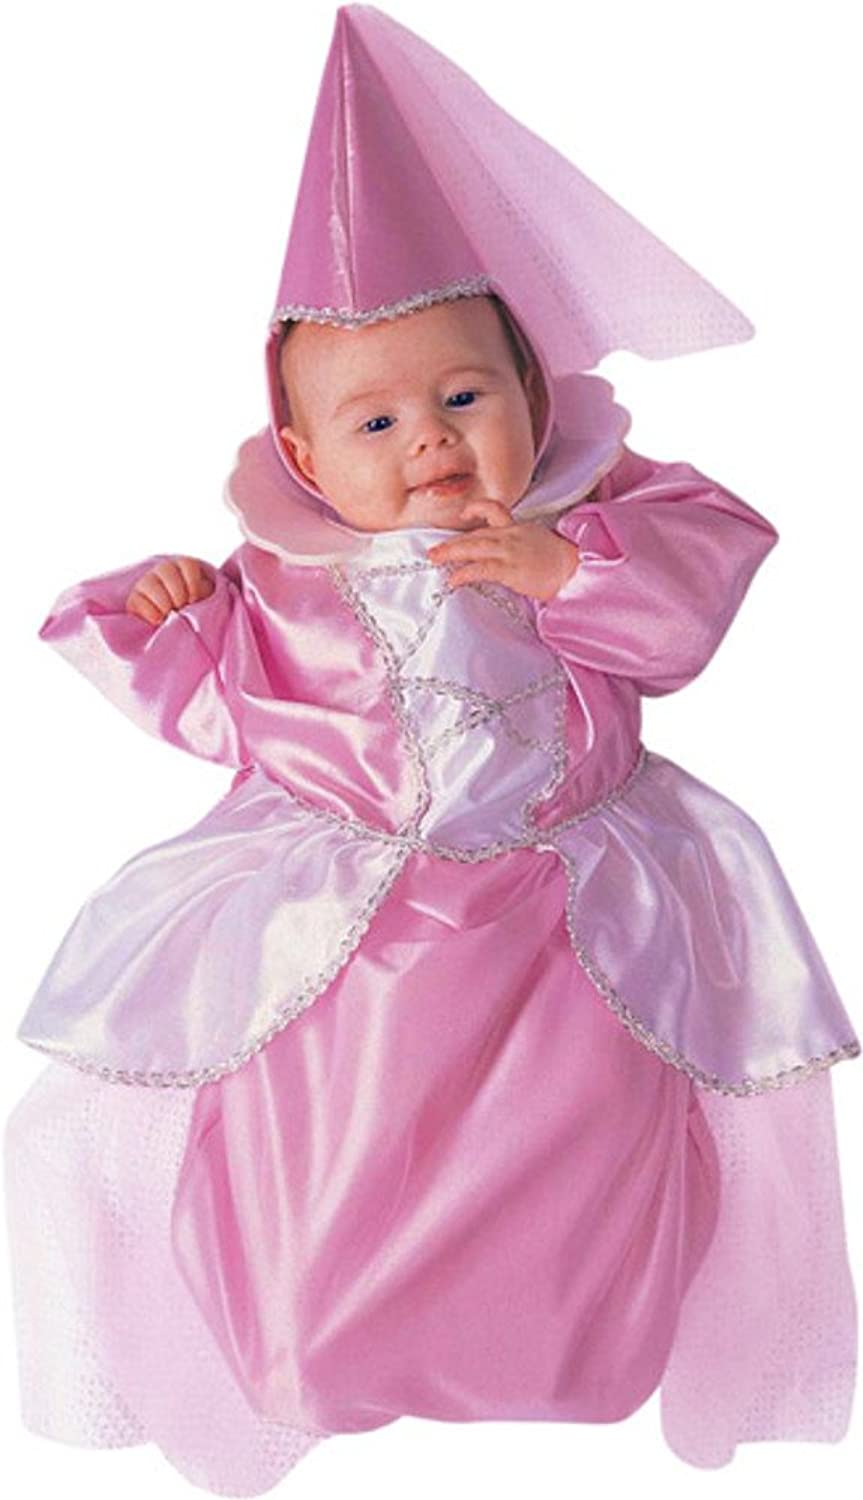 amazoncom baby girl pink princess halloween costume 6 12 months clothing - Halloween Costume For Baby Girls